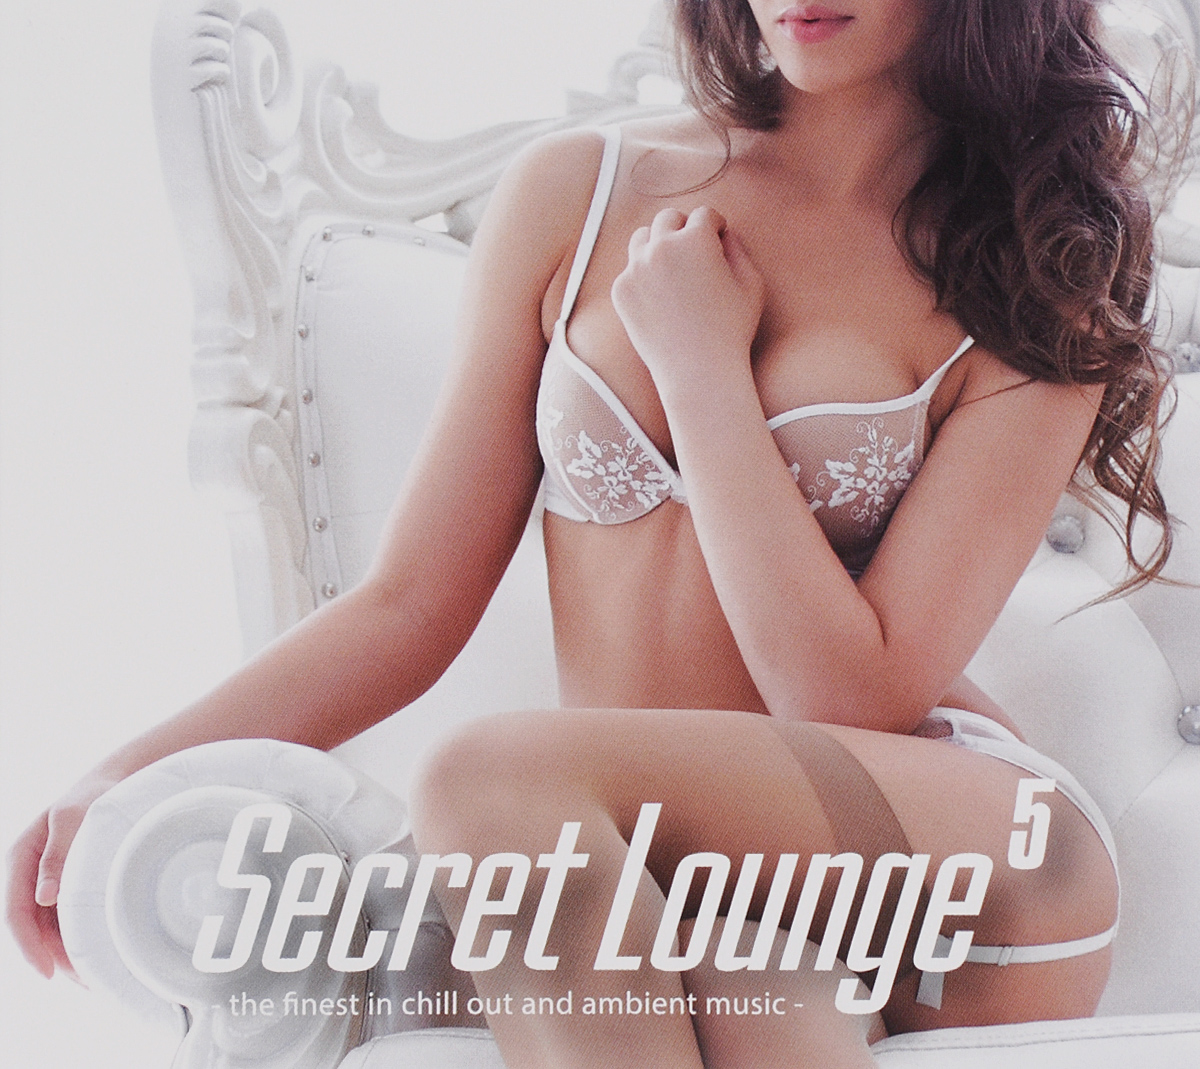 Francis Milia,Jaques Le Noir,Miki Leris,Cedrik Zimmermann,D-Chill,Katy Blue,Florian Fai,Castlebed,Niestolik & Richter,Alberto Casallo,Carpatica,Deep Melange,Lemonchill,Sinatic Secret Lounge 5. The Finest In Chill Out And Ambient Music (2 CD) chill the